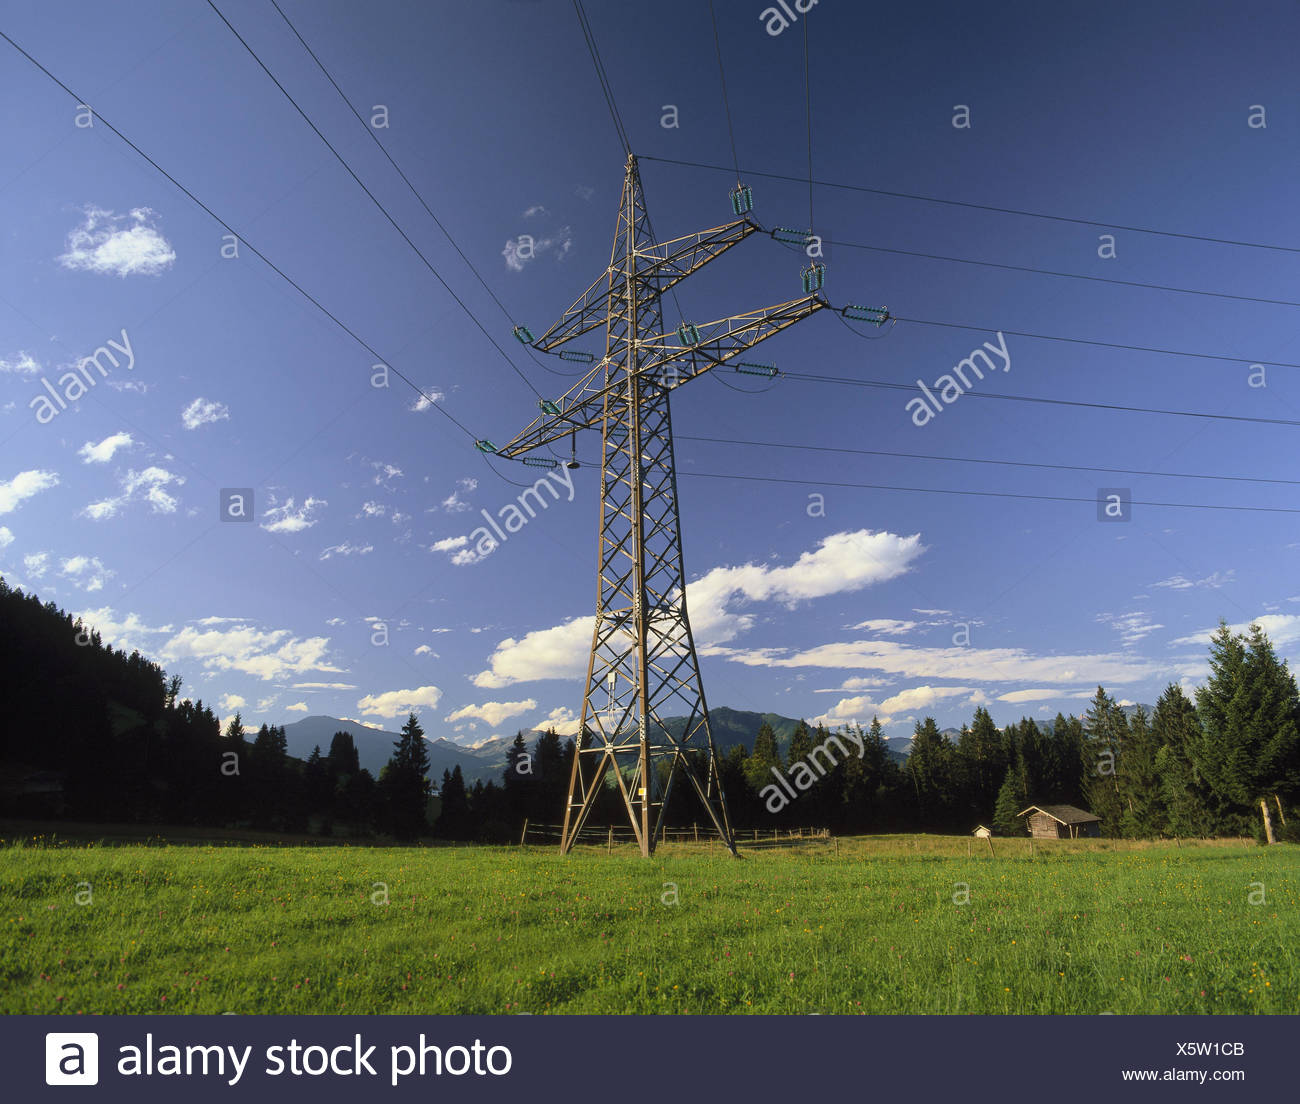 Meadow, power poles, nature, energy, electricity, current, masts, mast, circuits, power supply lines, power supply line, power supply, - Stock Image